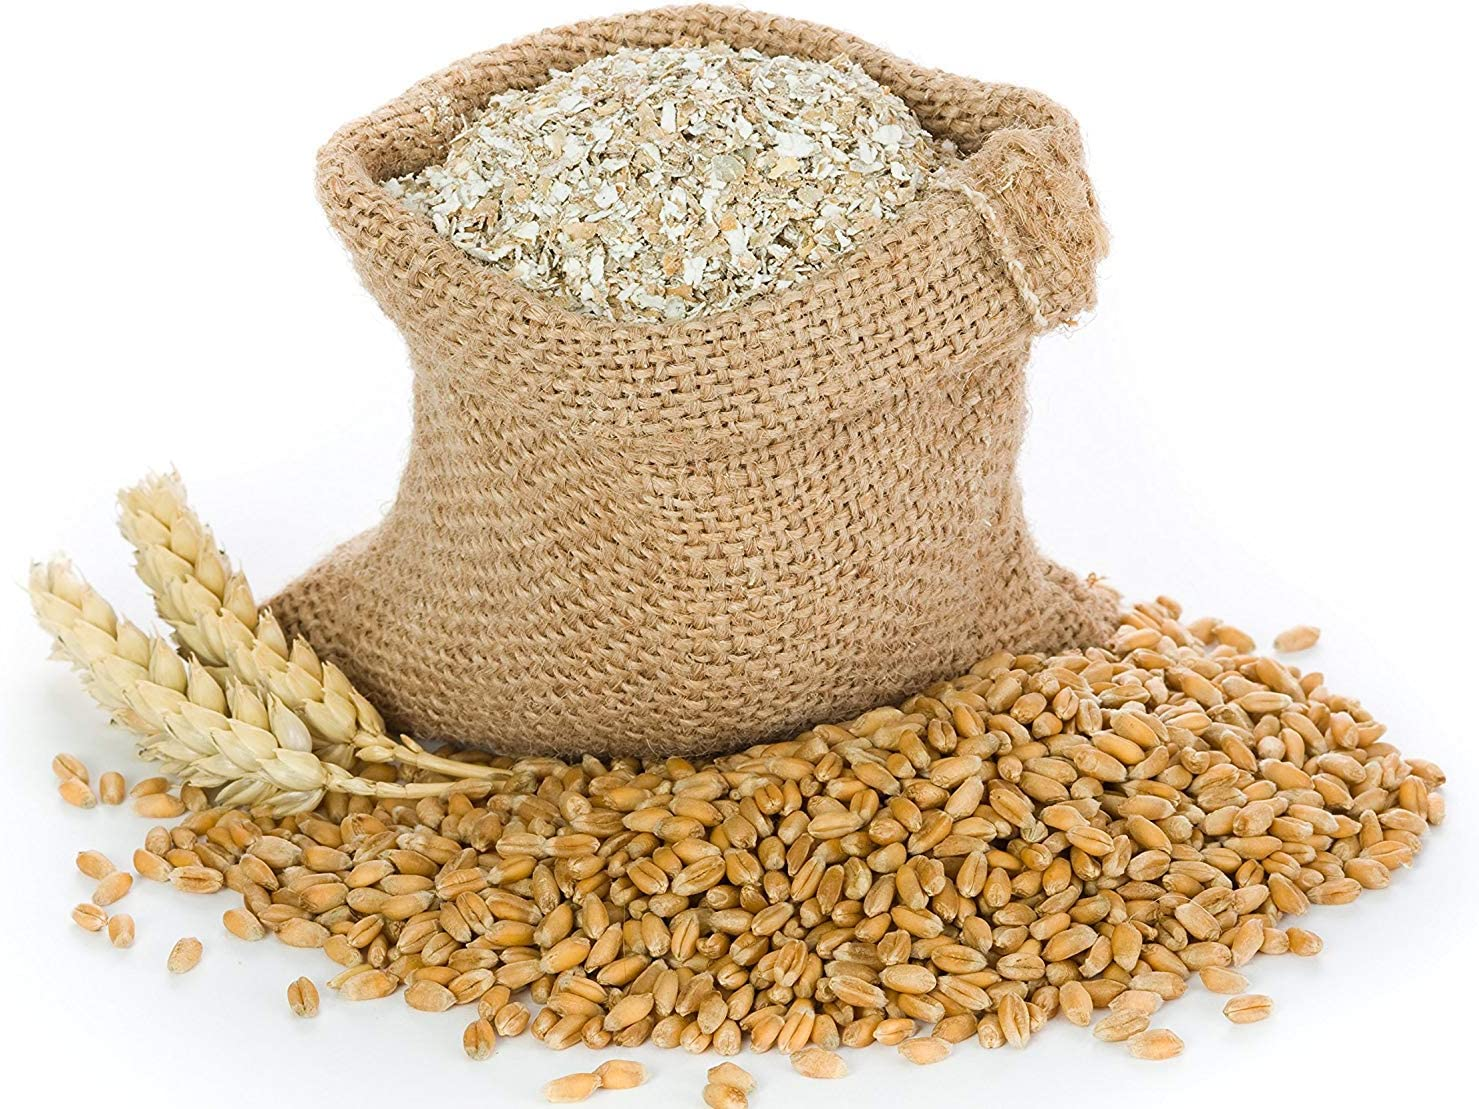 Lancaster County Organic Farms 10LB Wheat Bran Bedding, Food for Mealworms and Superworms